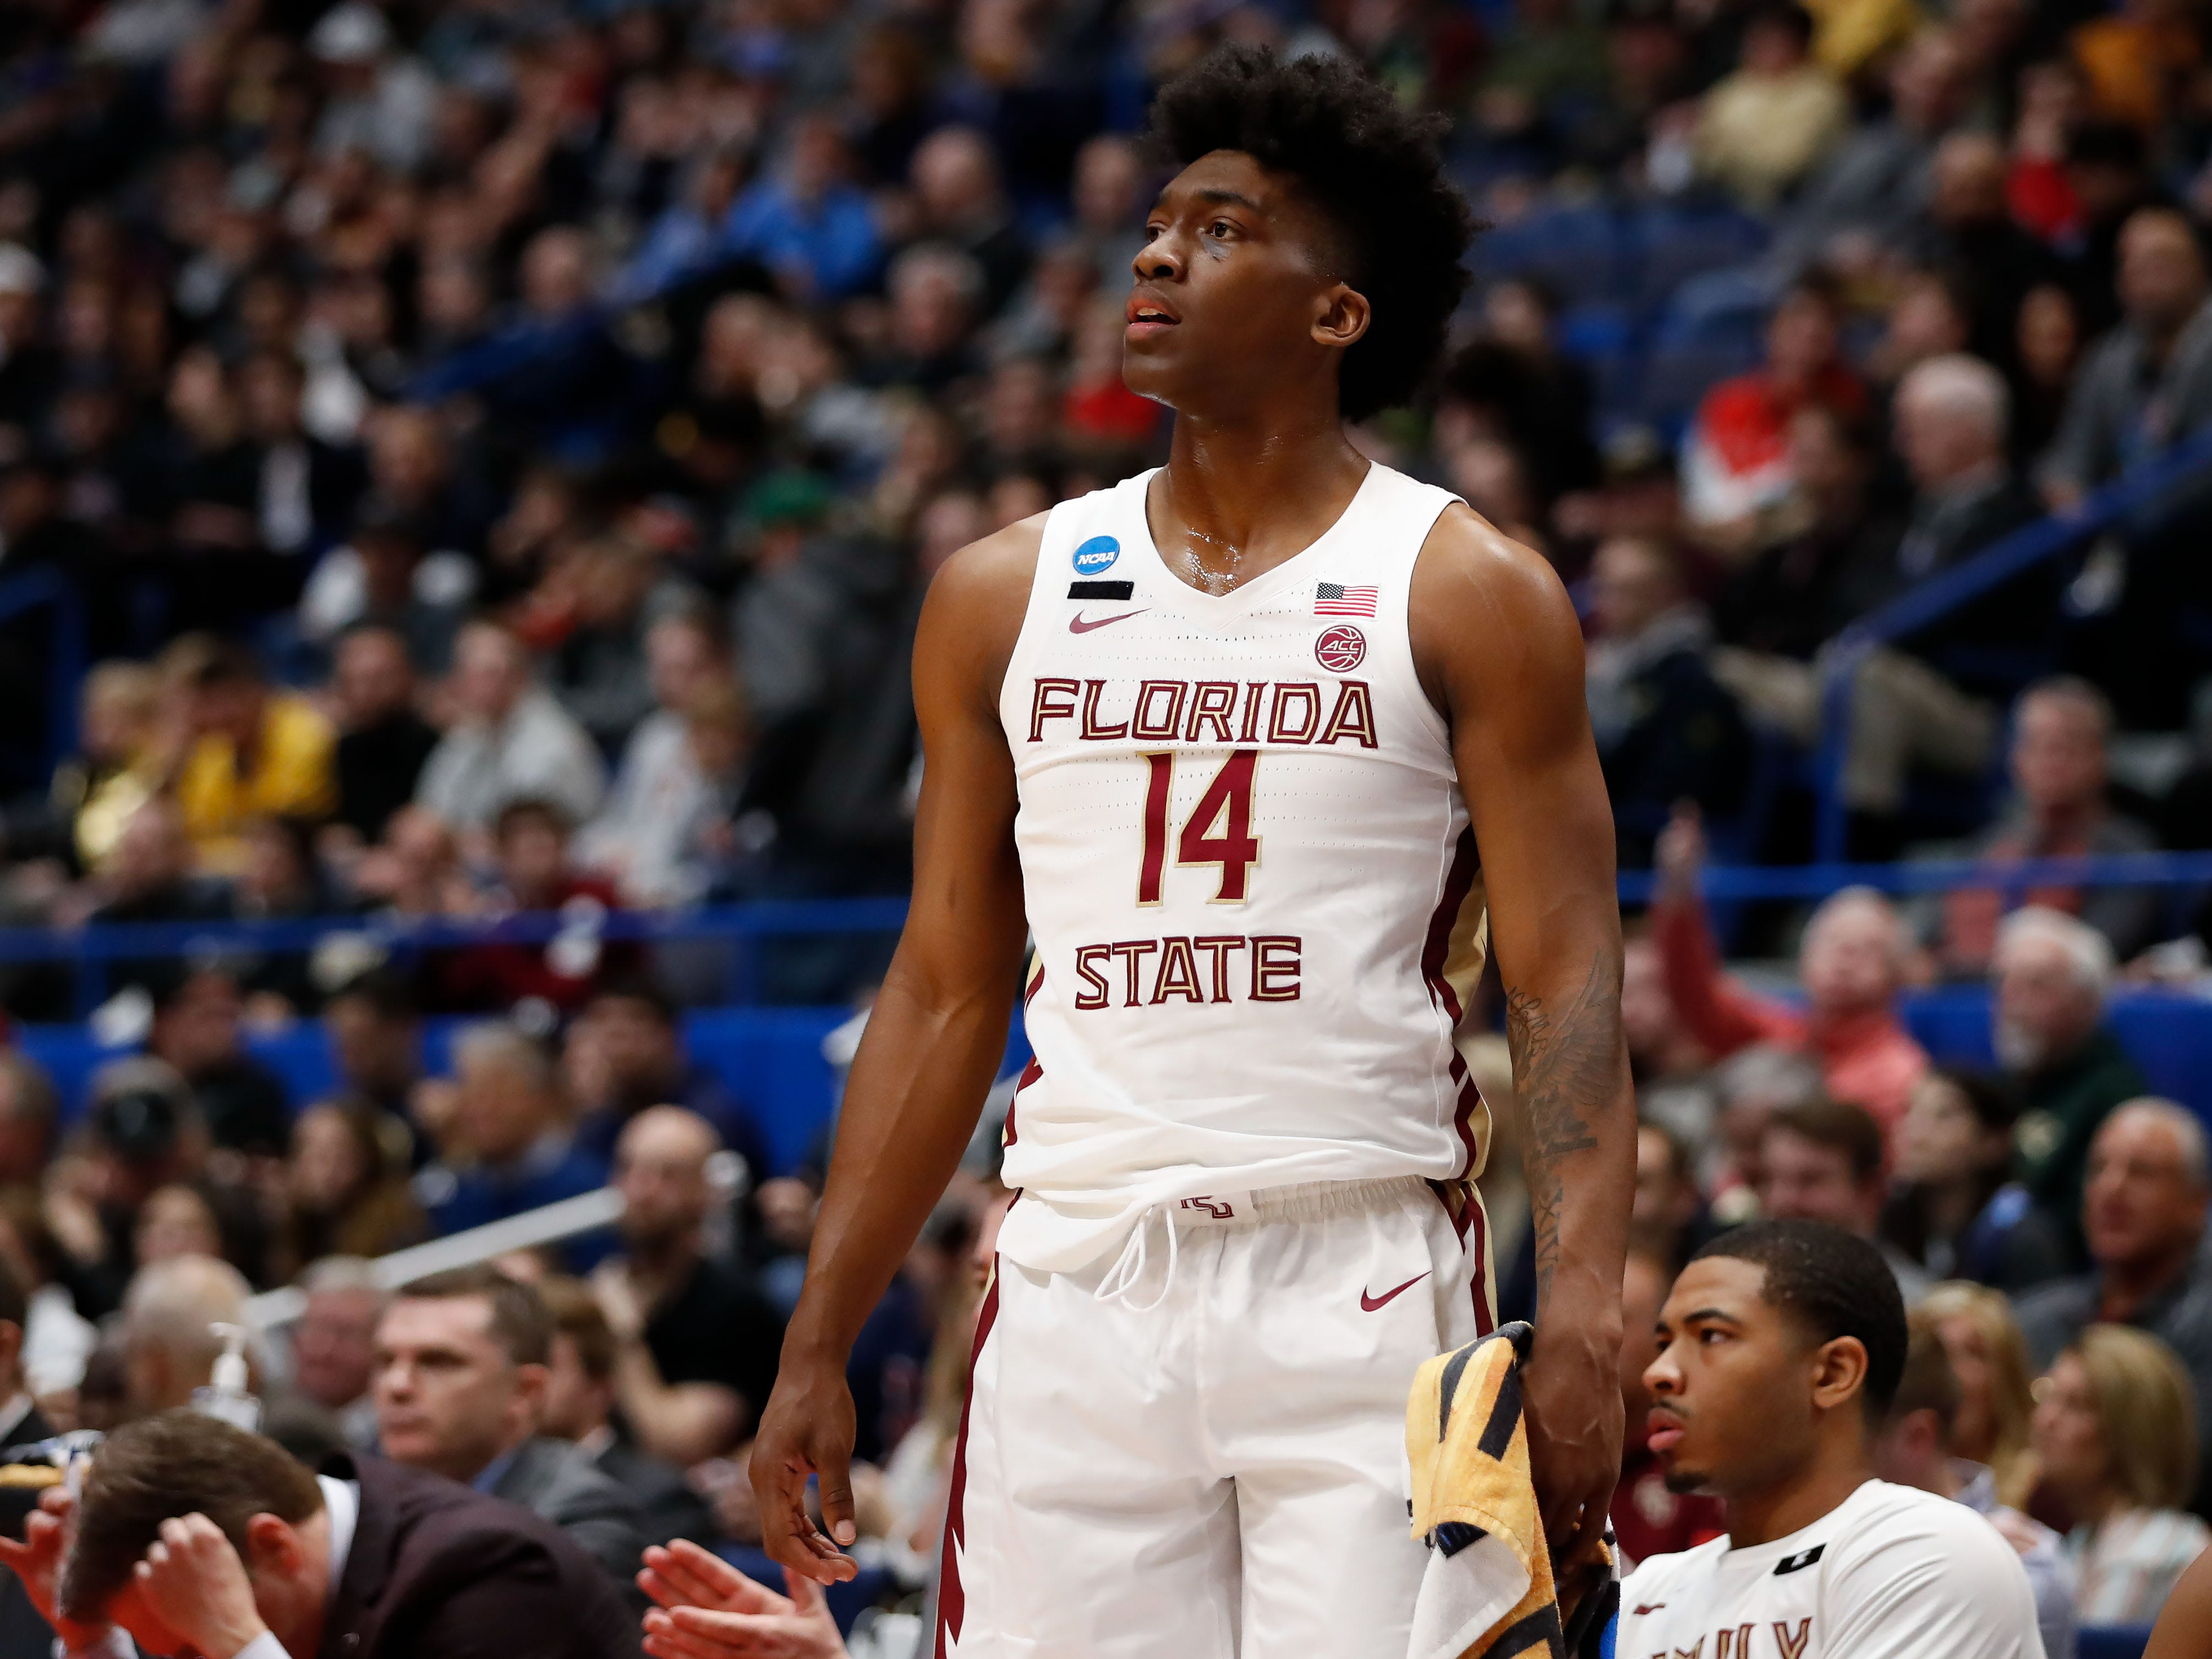 Mar 23, 2019; Hartford, CT, USA; Florida State Seminoles guard Terance Mann (14) watches a play from the bench during the first half of a game against the Murray State Racers in the second round of the 2019 NCAA Tournament at XL Center. Mandatory Credit: David Butler II-USA TODAY Sports